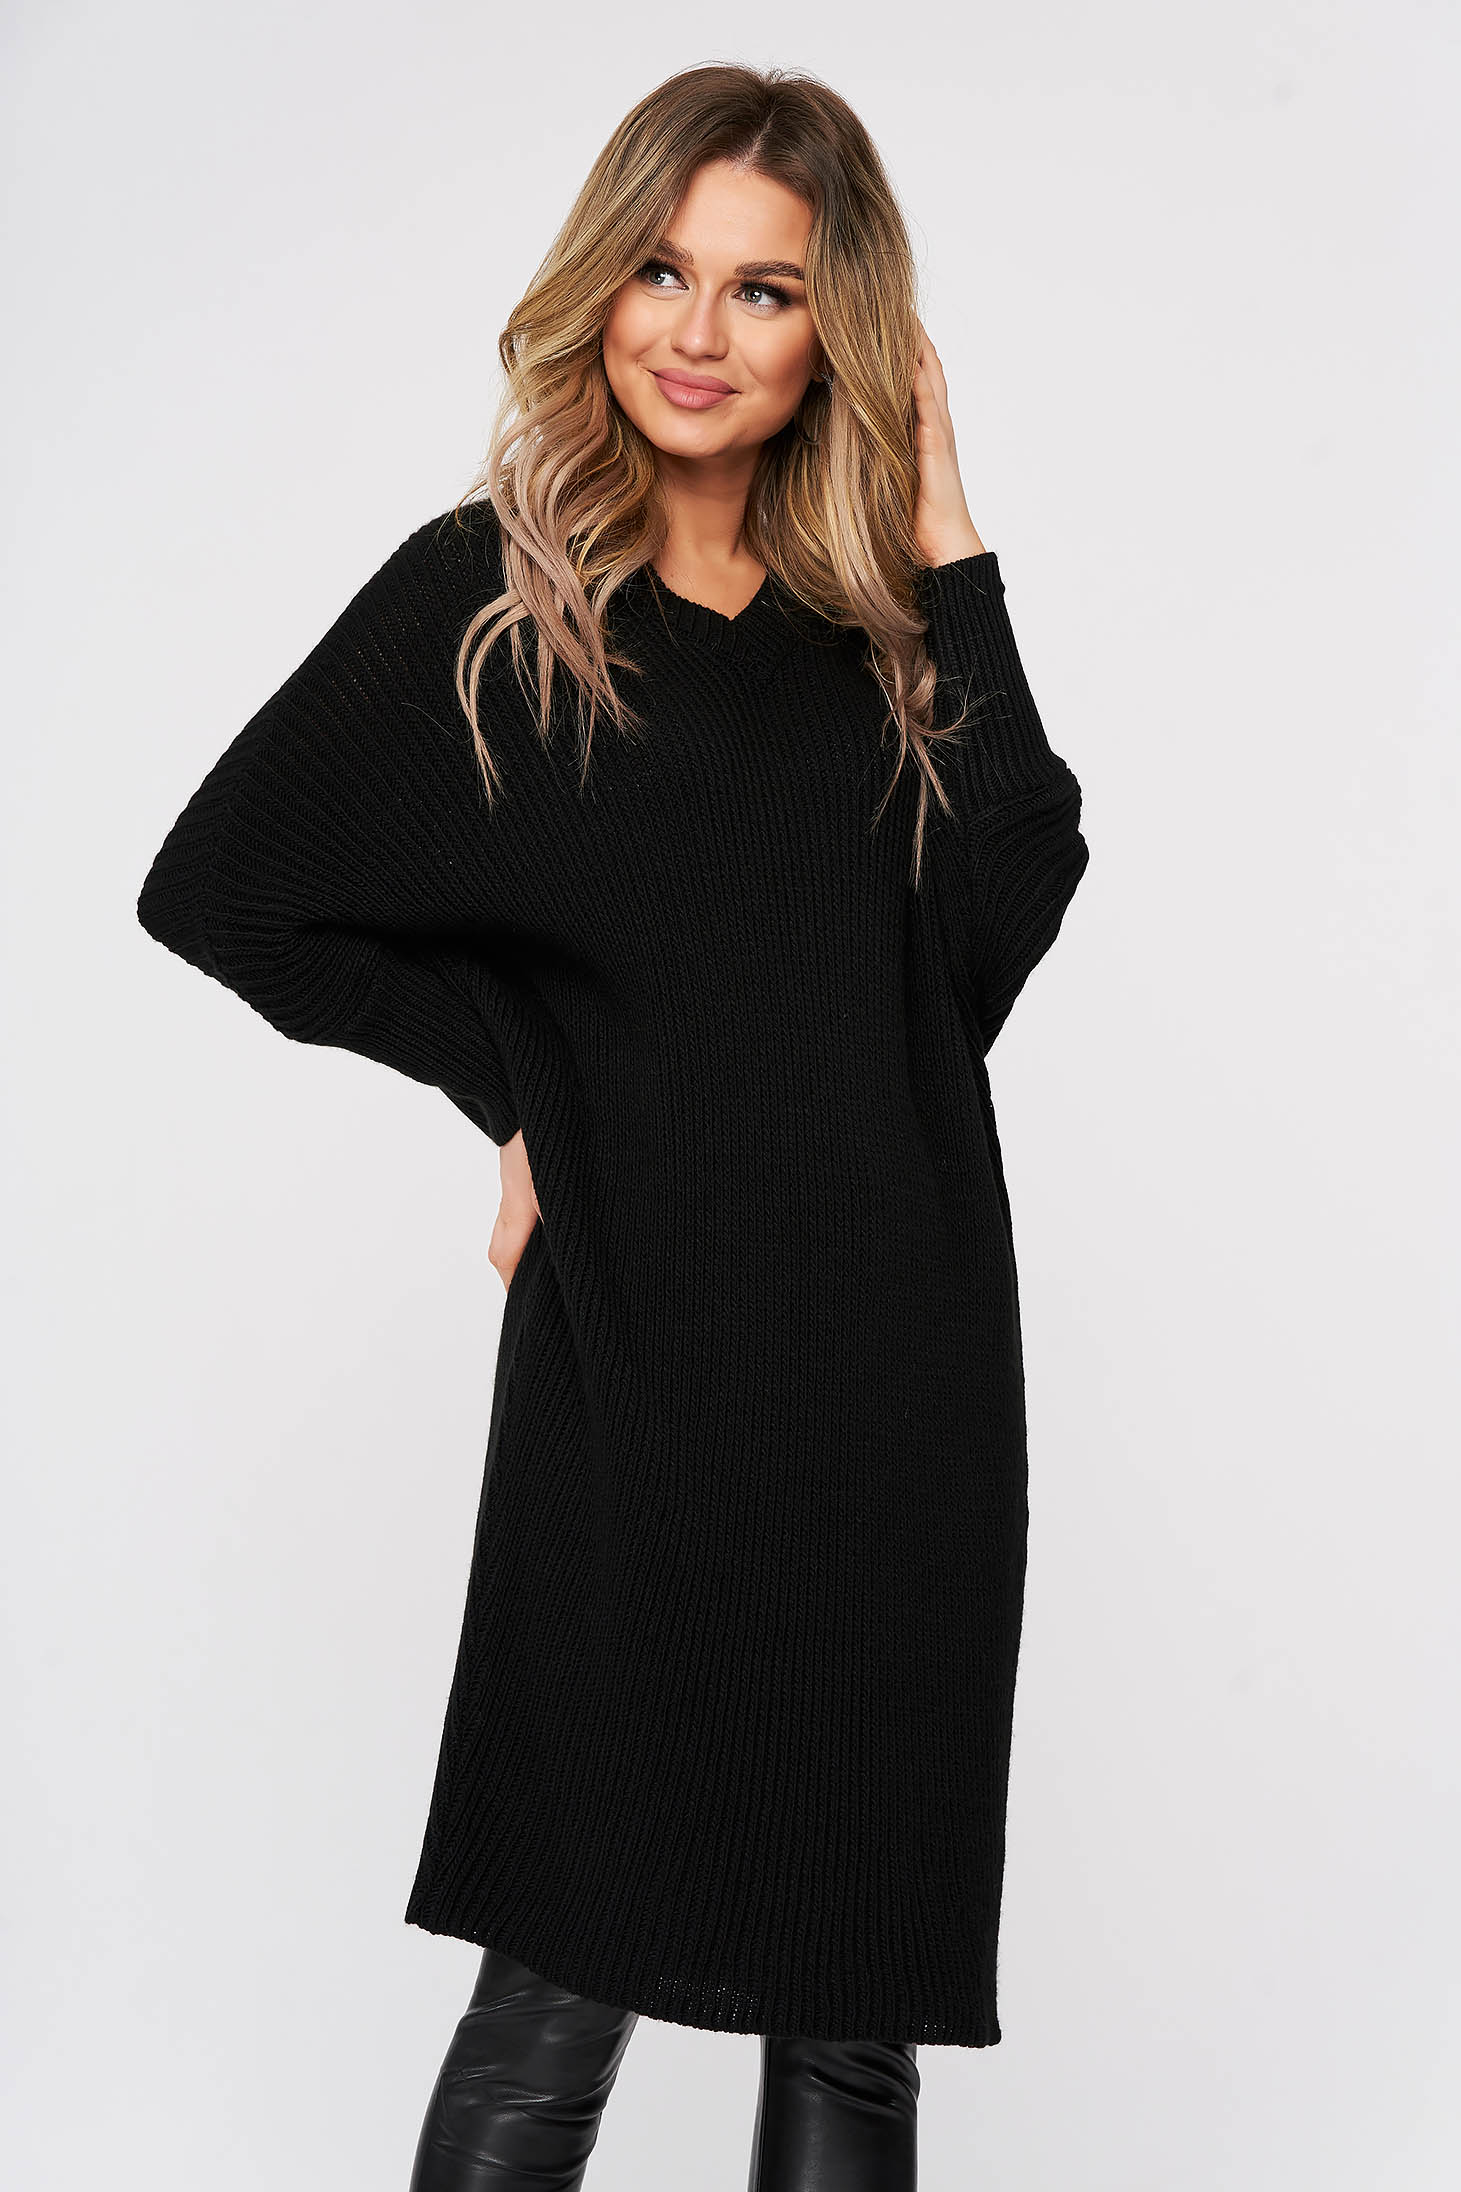 Black dress from striped fabric knitted fabric 3/4 sleeve large sleeves casual